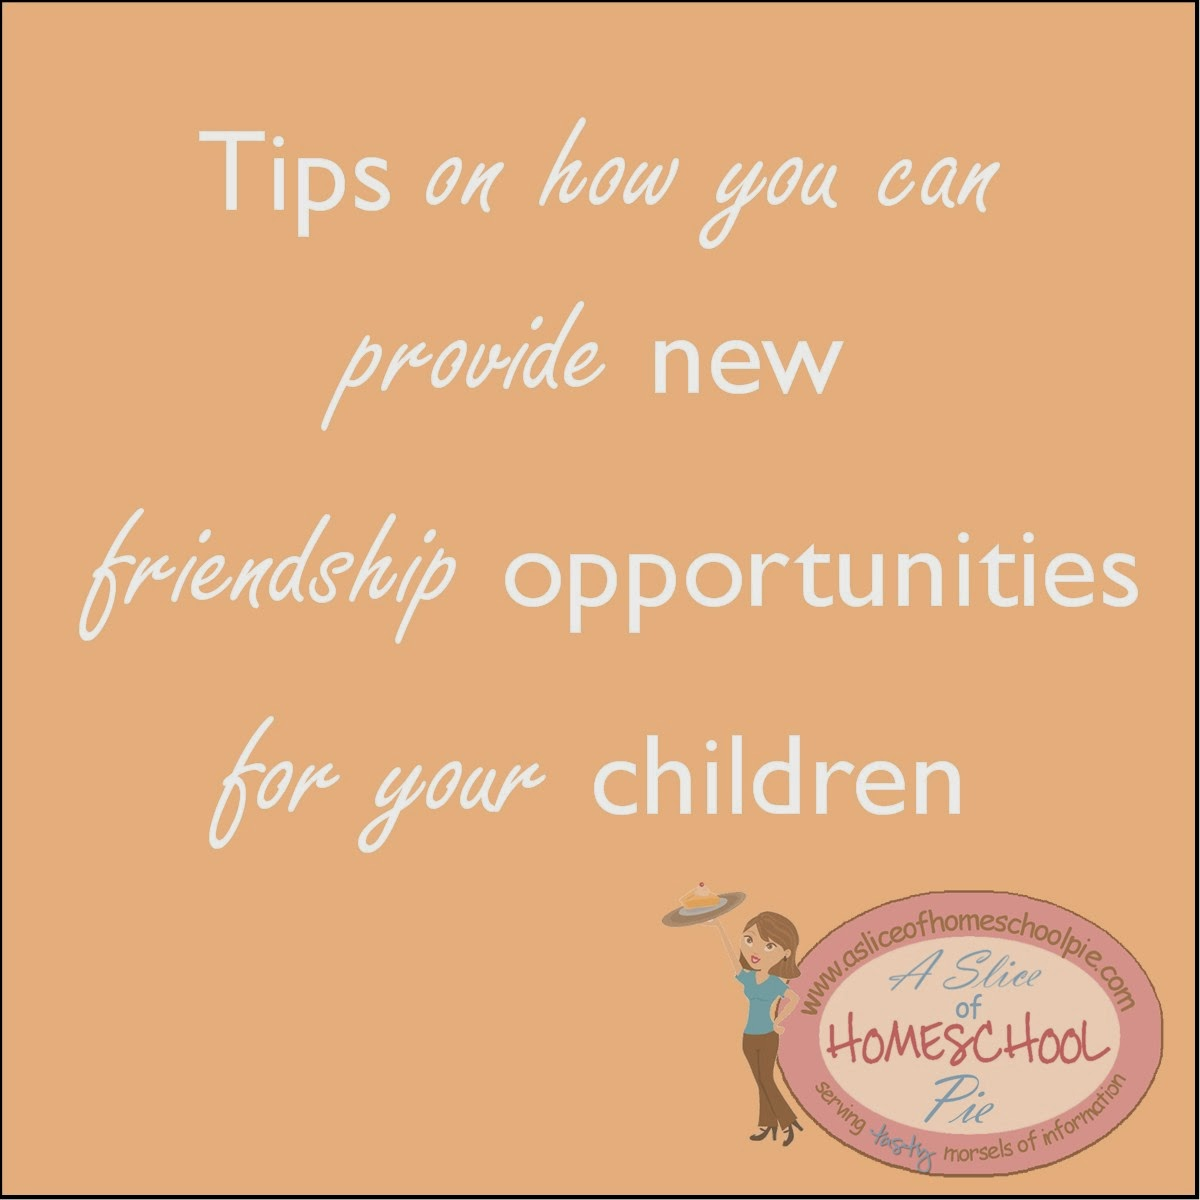 Tips on ways to provide friendship opportunities for children by A Slice of Homeschool Pie.com #homeschool #parenting